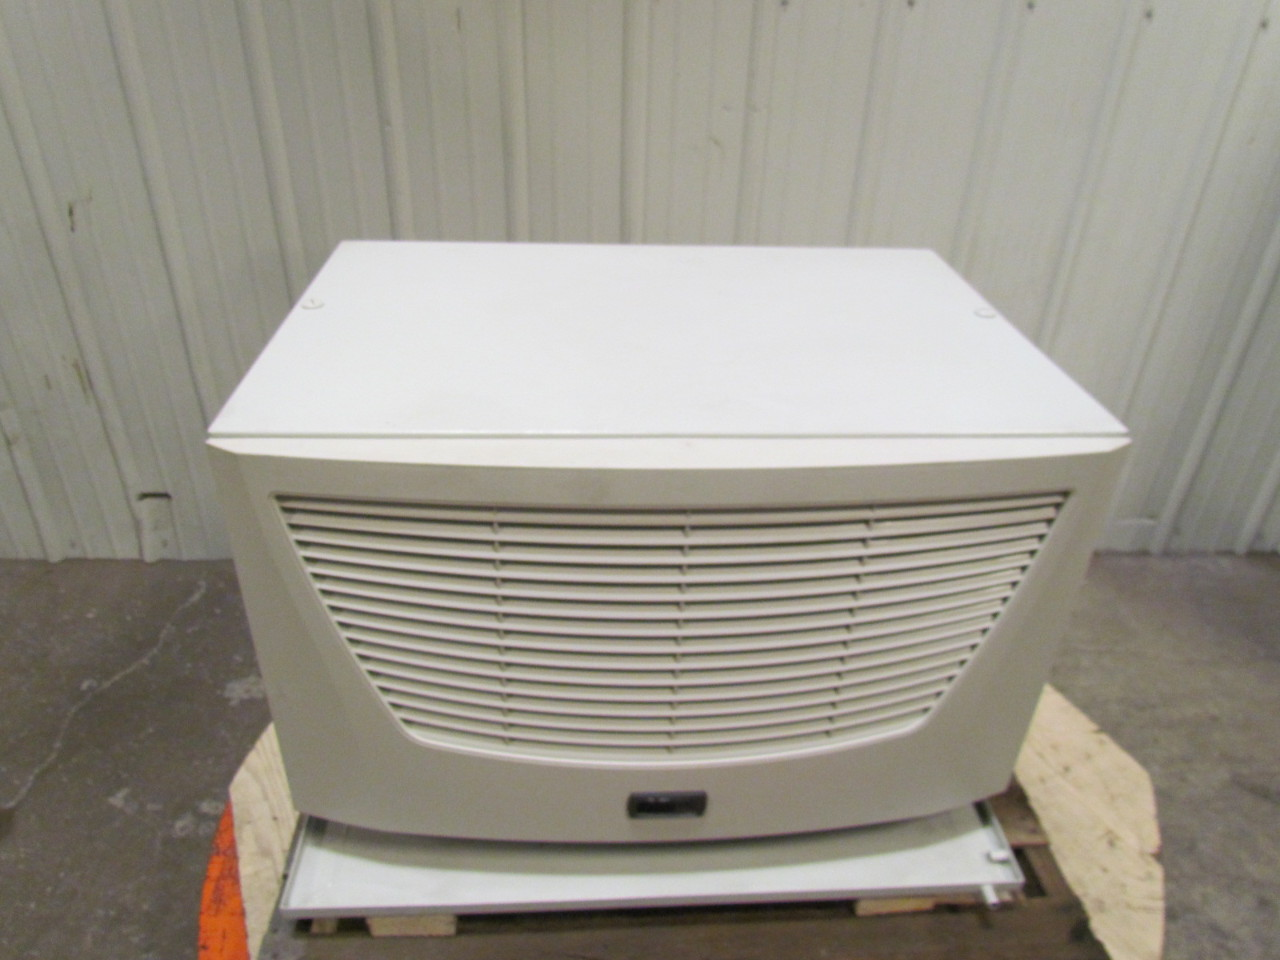 Rittal Sk 3386140 Roof Mounted Ac Cooling Unit Air